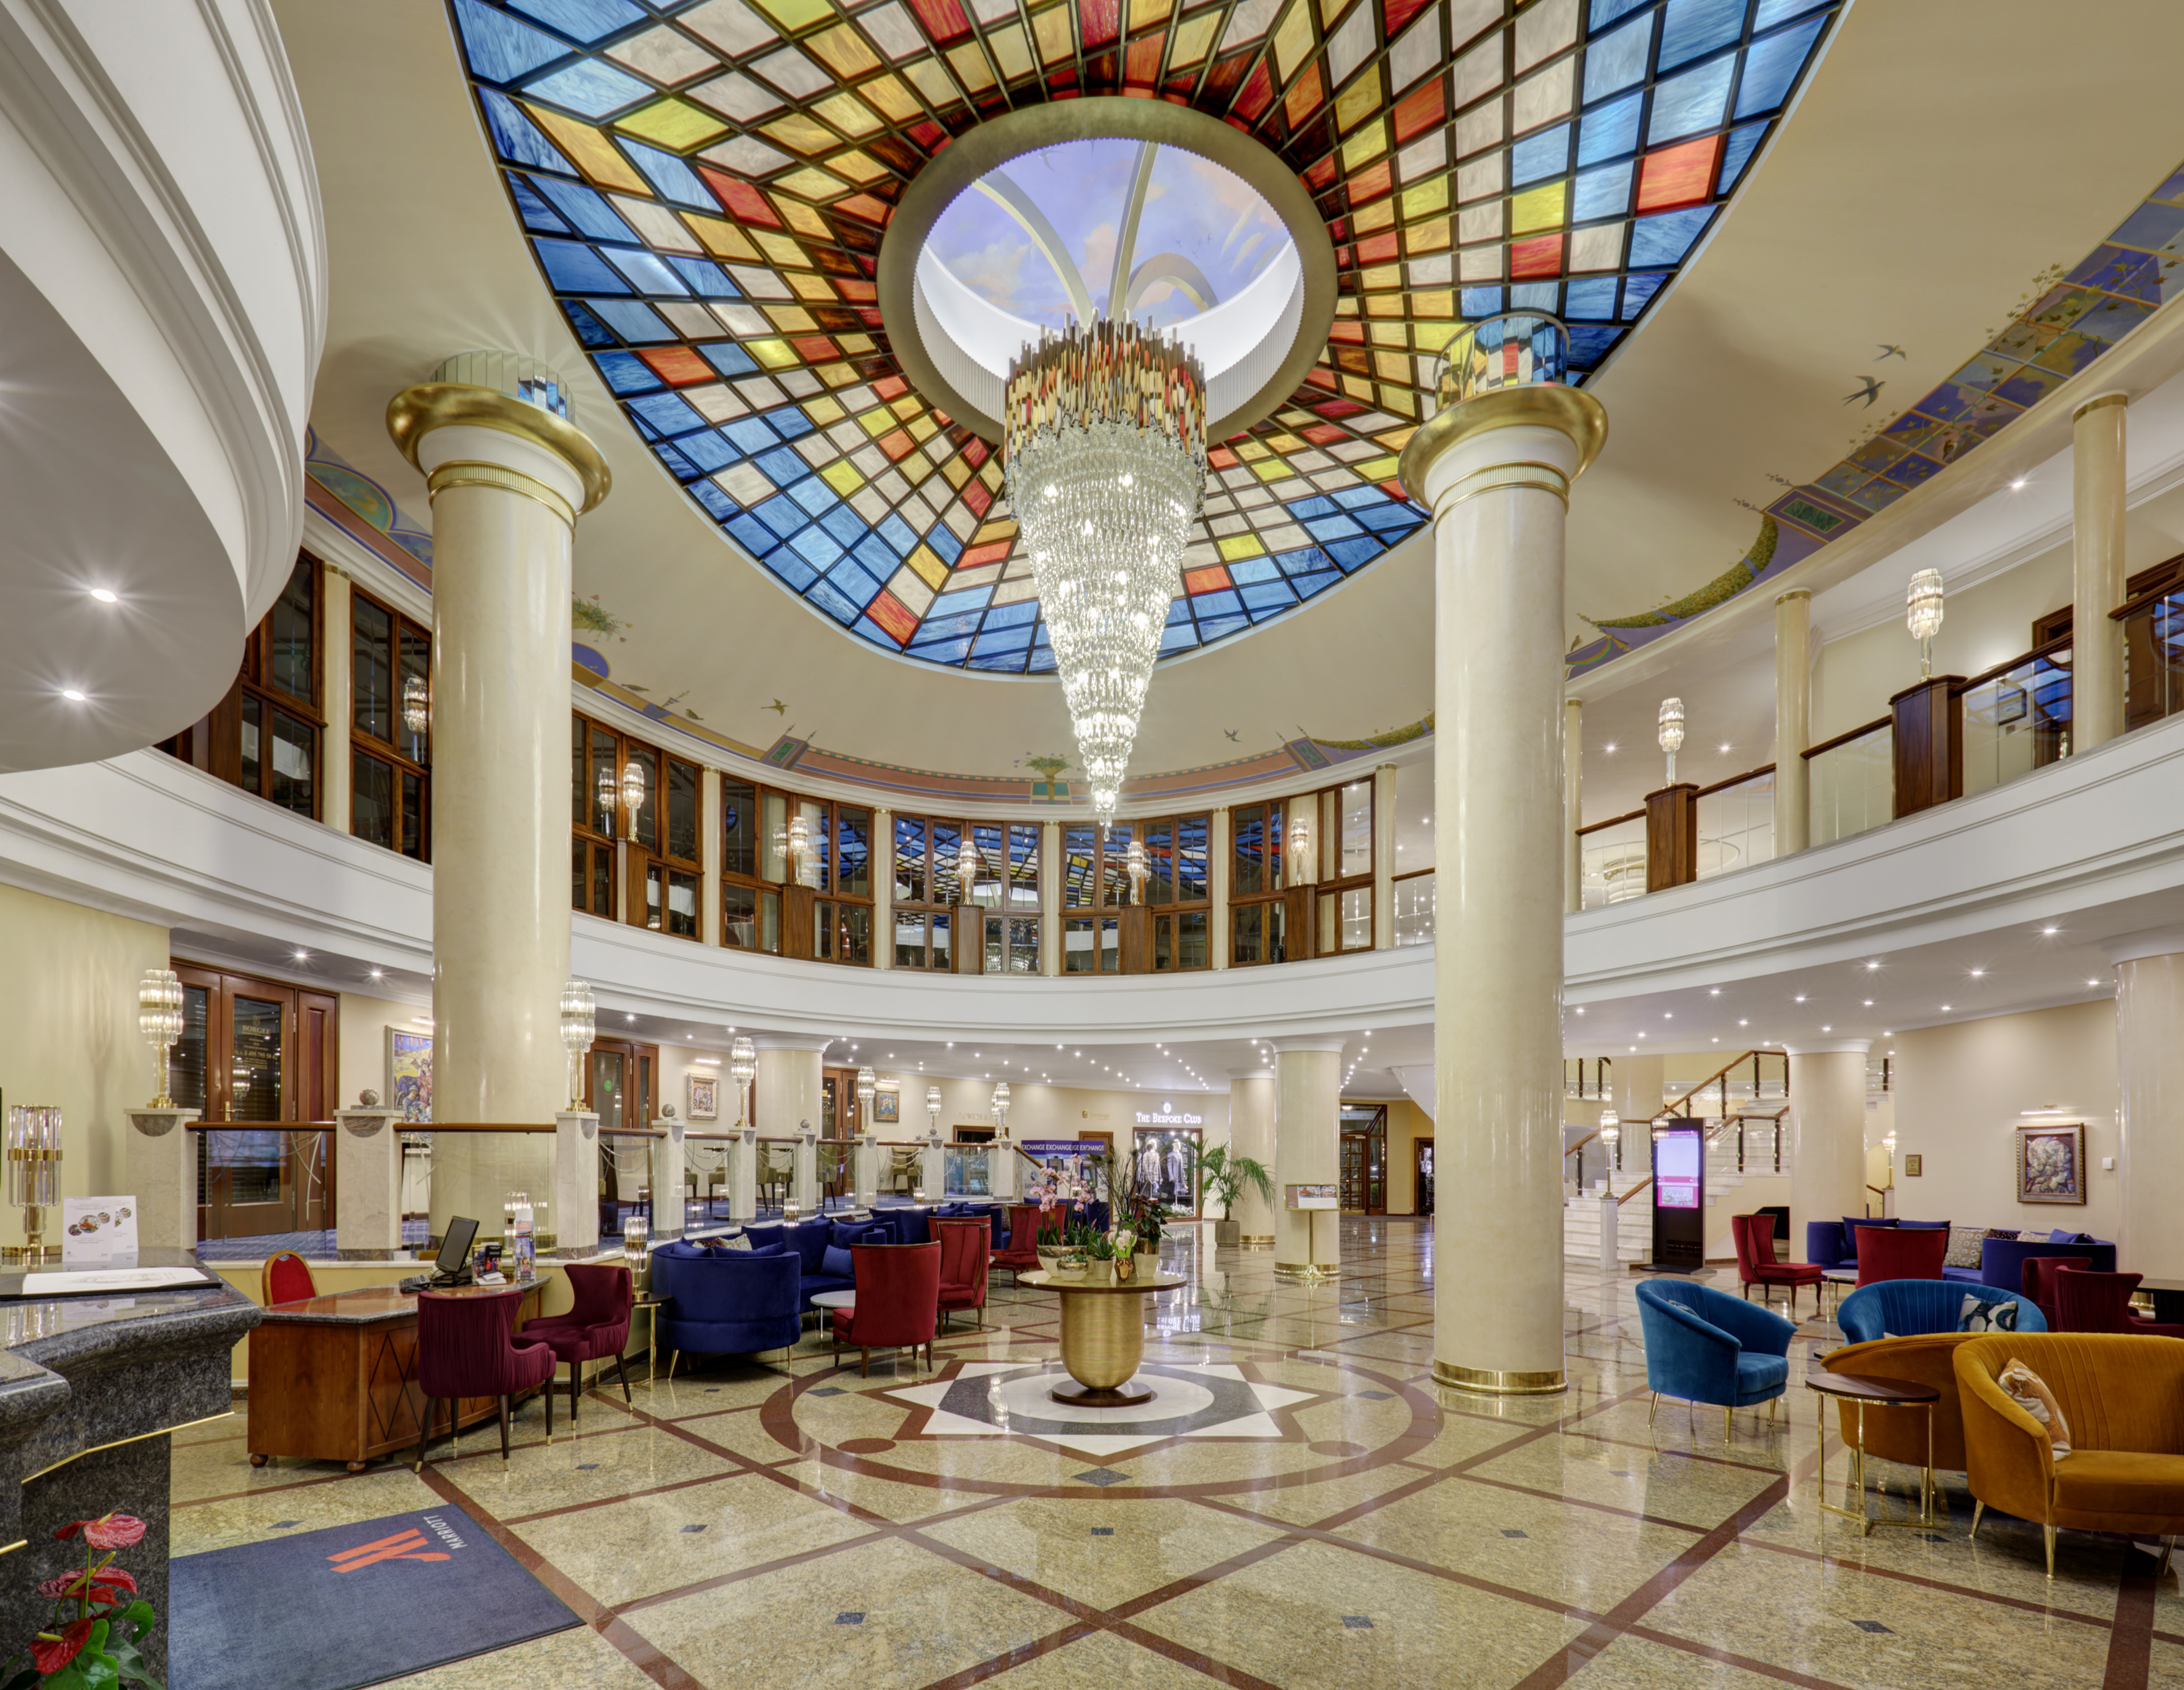 Luxury Chandeliers At Marriot Royal Aurora Hotel